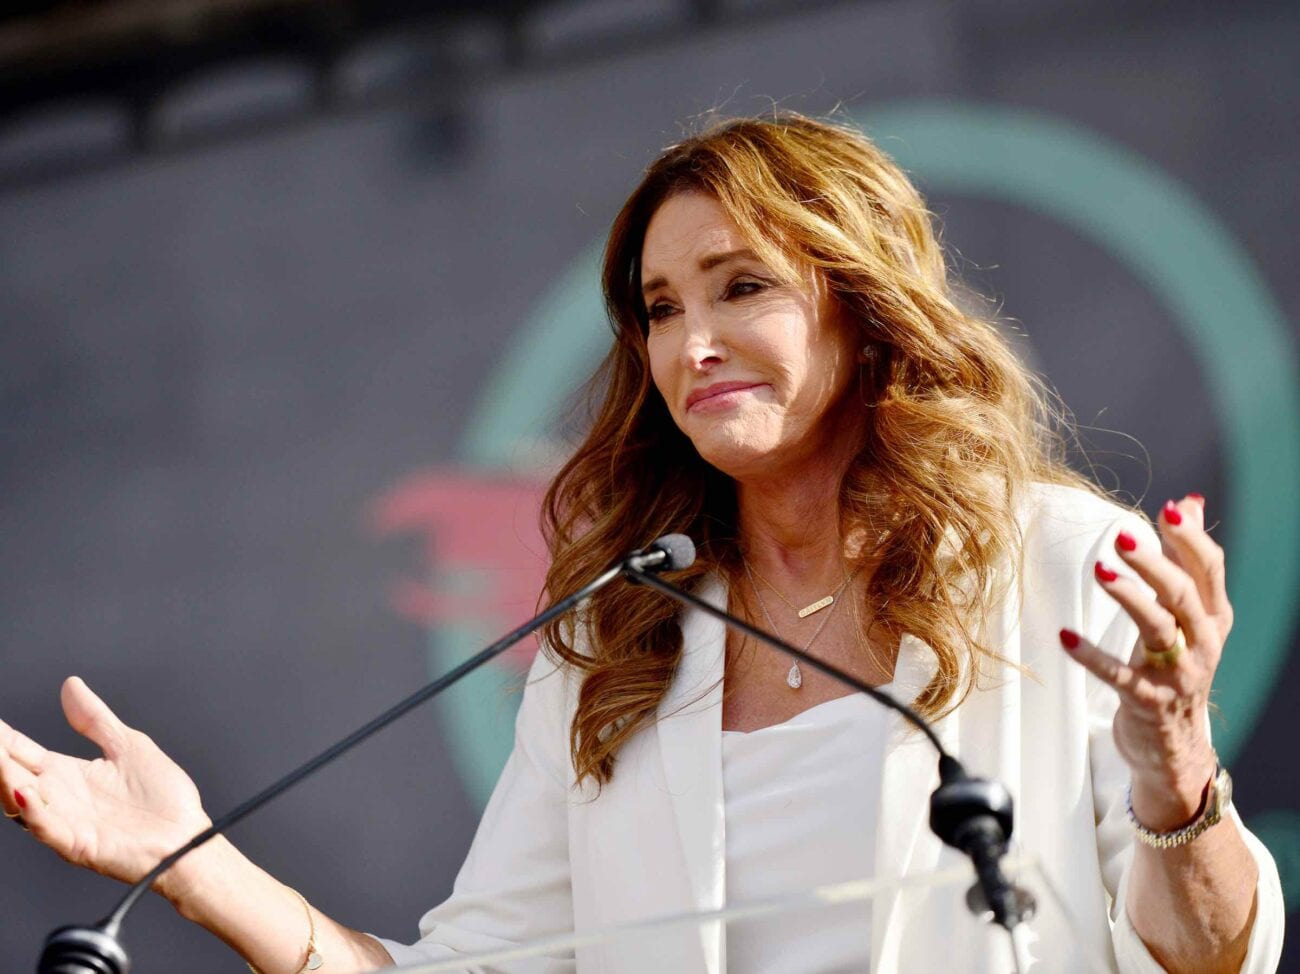 Caitlyn Jenner announced yesterday that she's now running for governor of California.Get ready to retweet and dive into why #SayNoToJenner is trending.